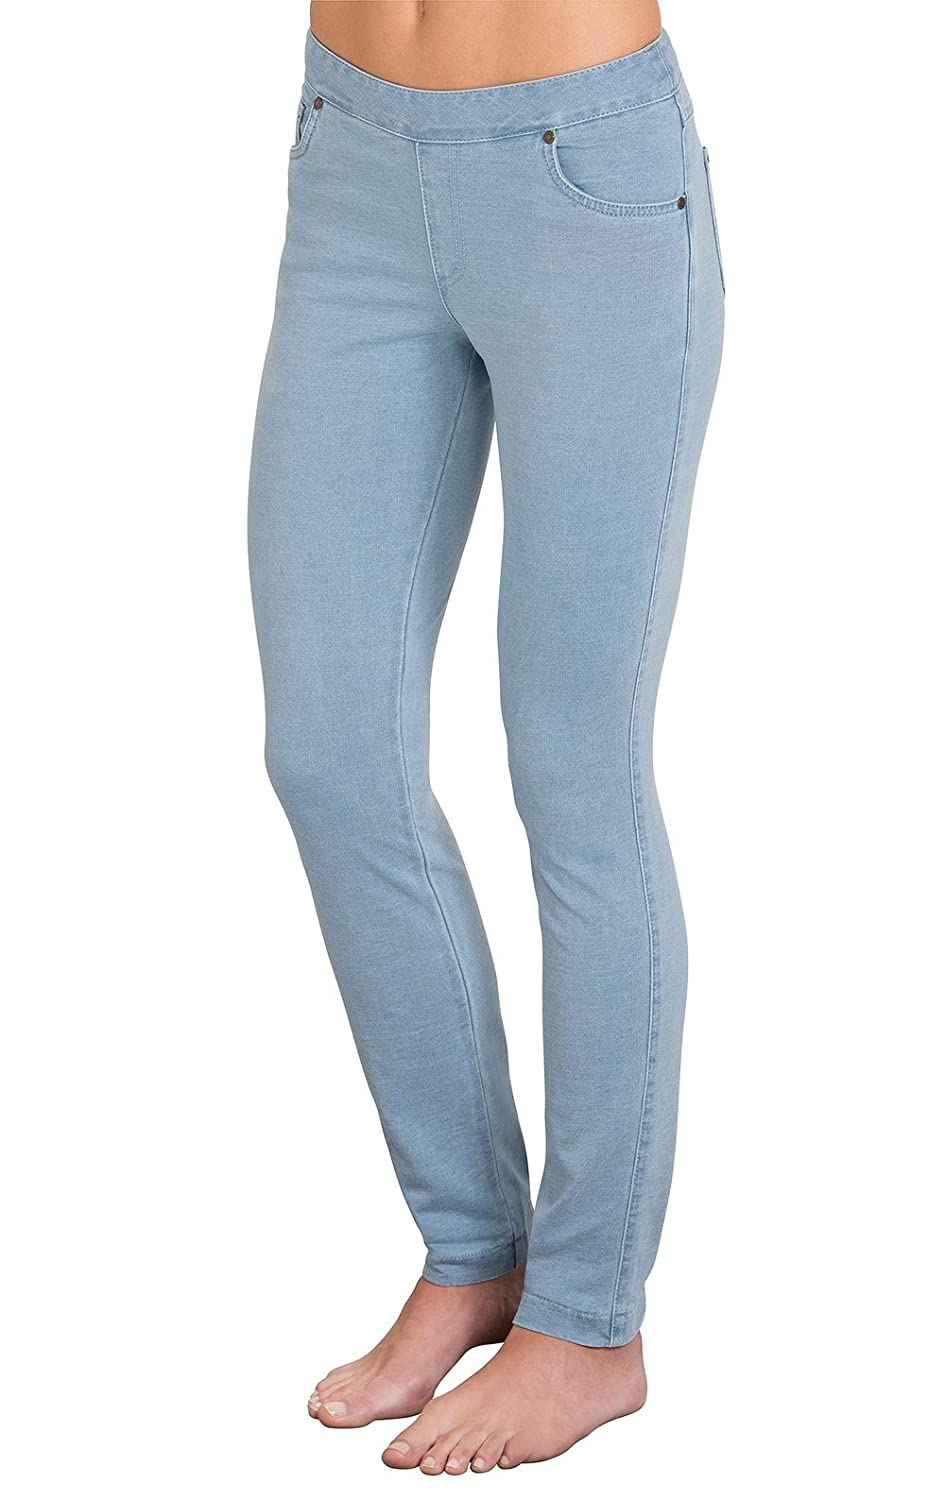 8d0e8ea8992bc PajamaJeans Women's Skinny Stretch Knit Denim Jeans: Amazon.ca: Clothing &  Accessories